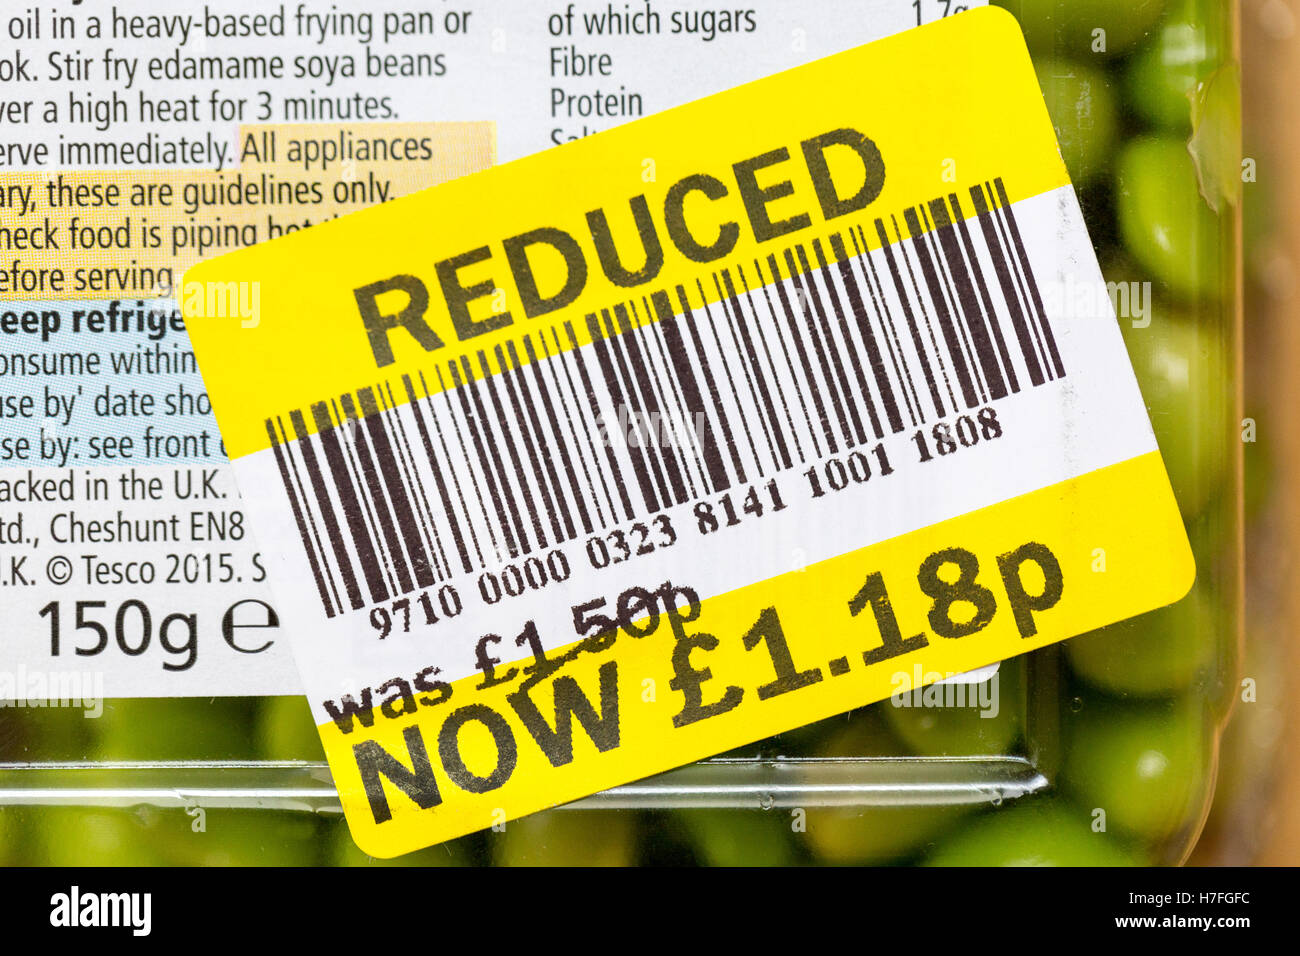 Close up photos of a reduced food label at Tesco - Stock Image